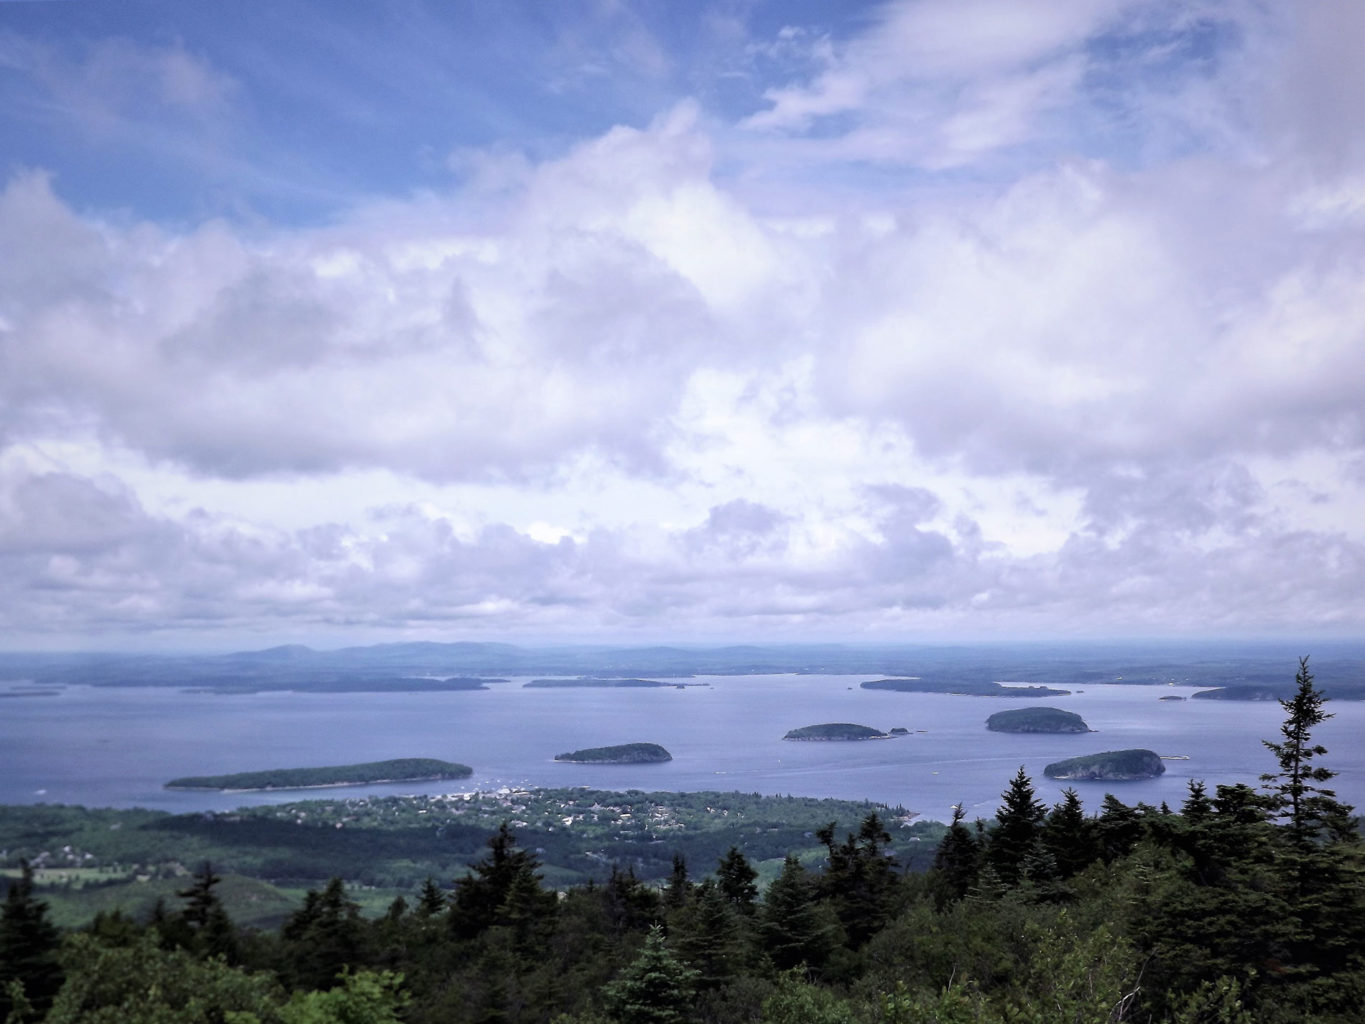 The iconic view of Bar Harbor that we all love so much